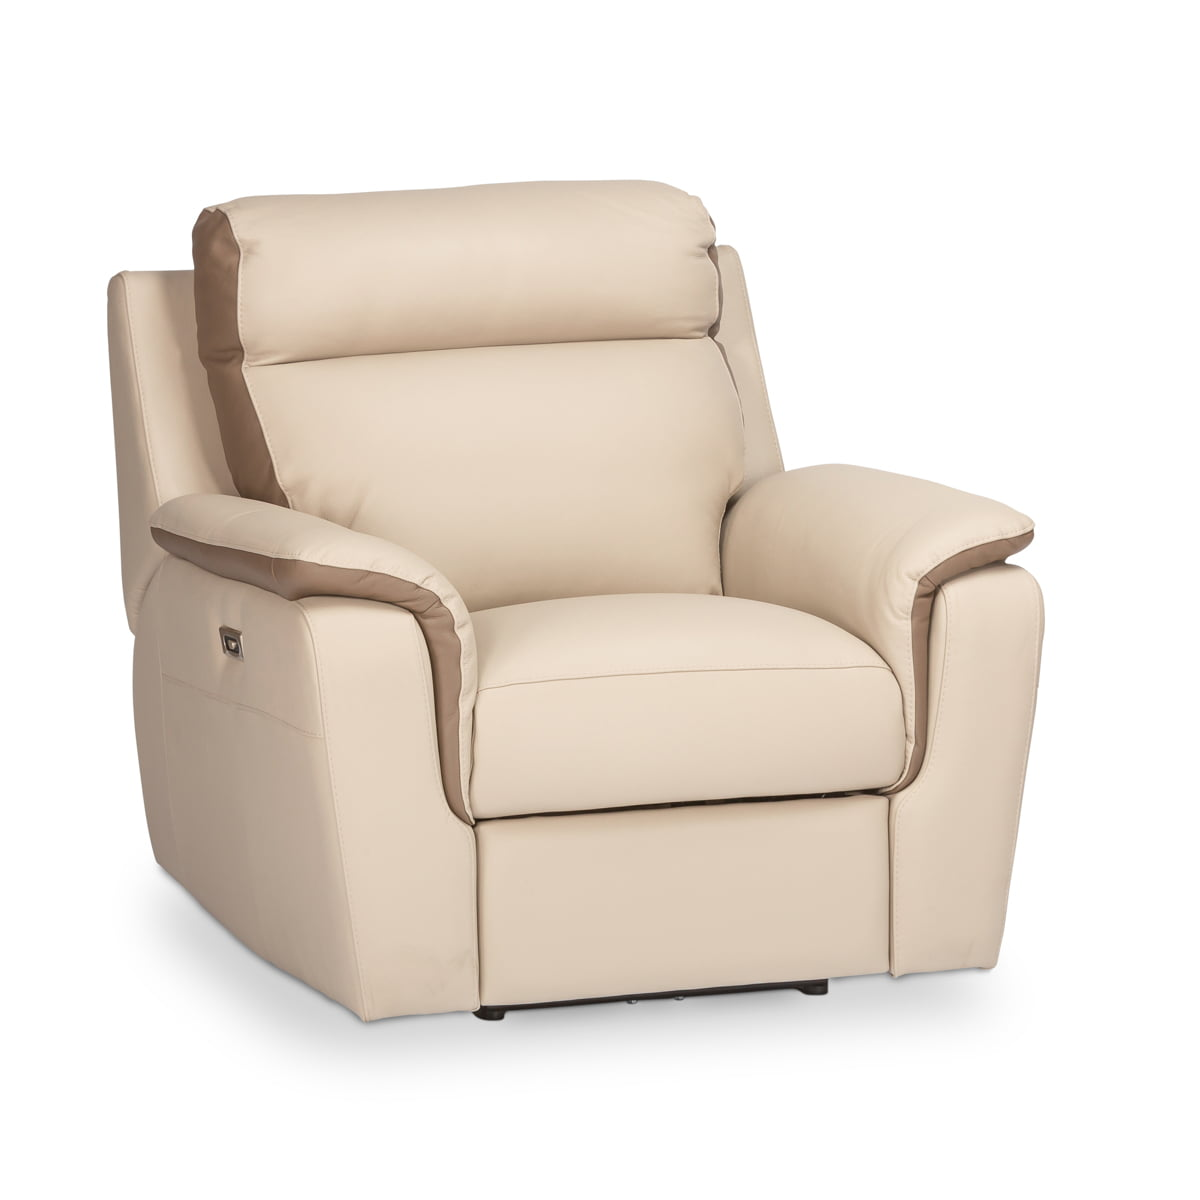 Donatella Leather Powered Recliner